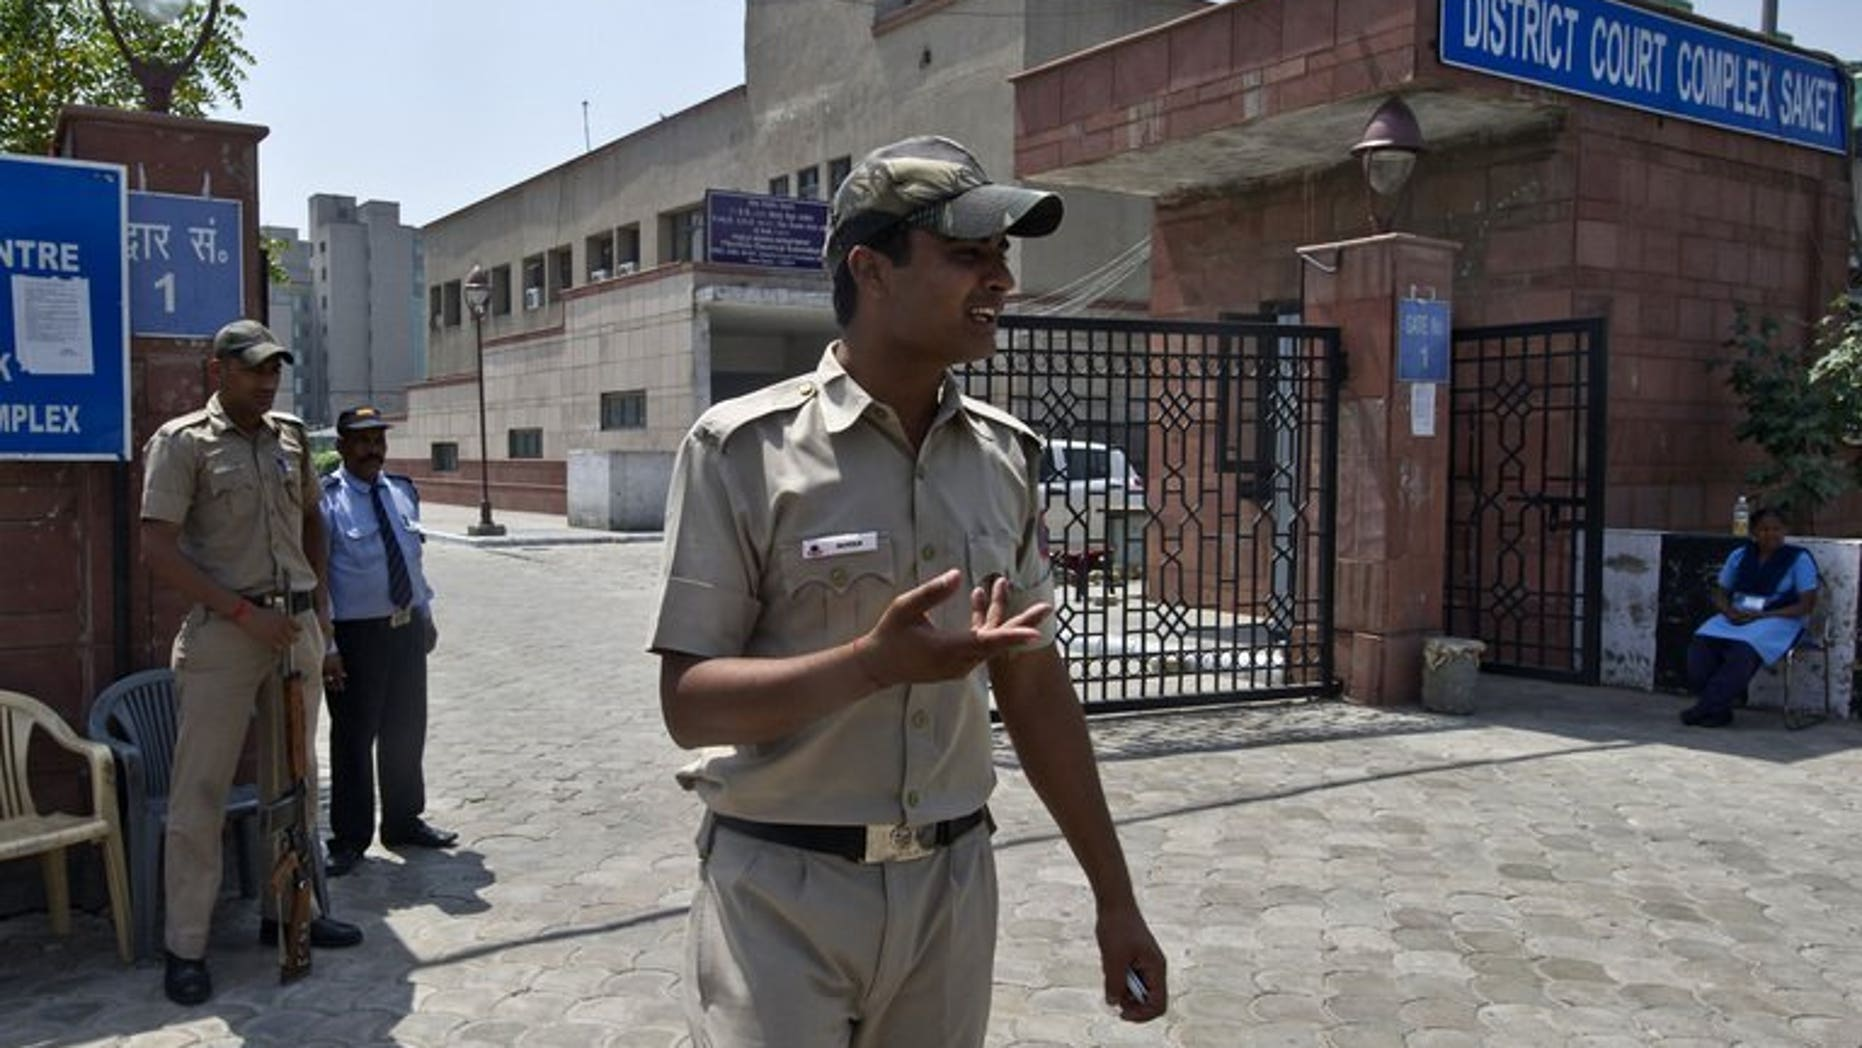 Indian police-men stand guard outside the Saket district court in New Delhi on April 8, 2013. The new police chief of India's capital said Wednesday his top priority was making the city safer for women after the fatal gang-rape of a student sparked violent protests.